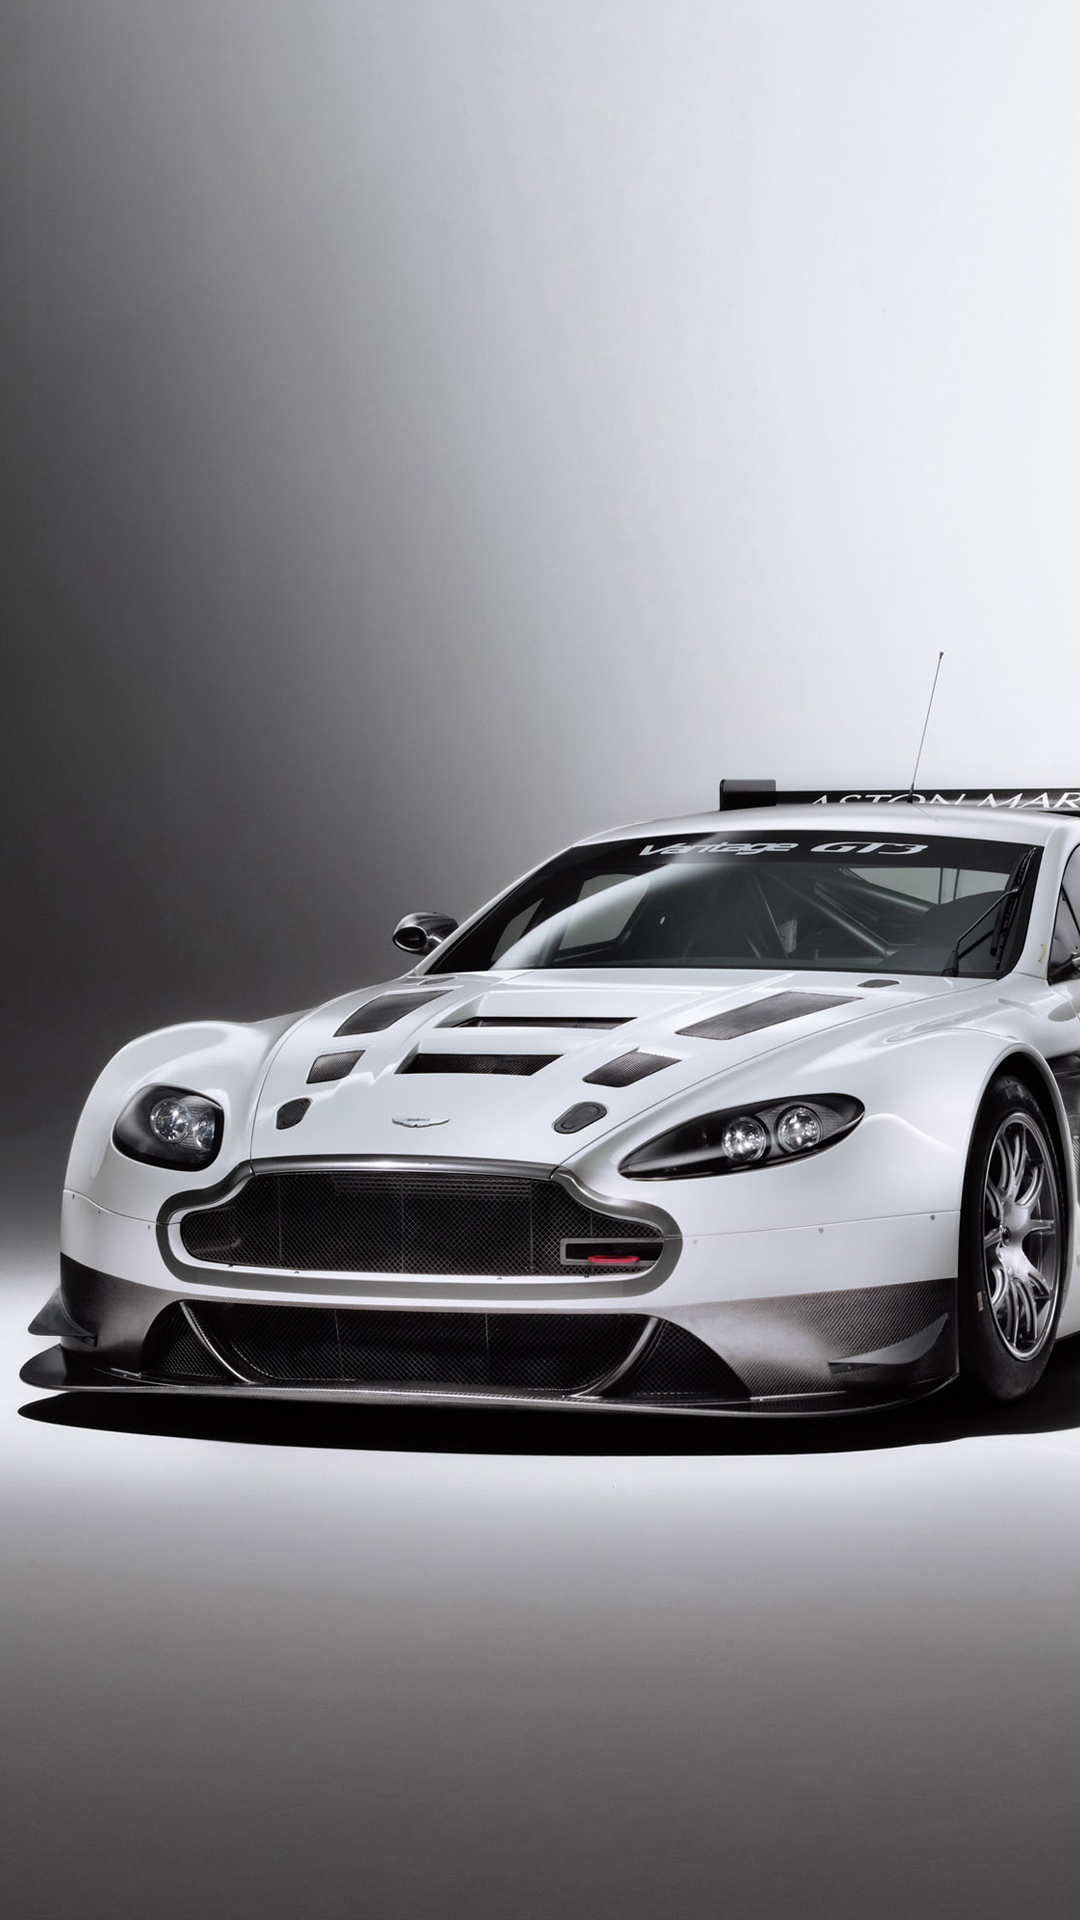 Simple Quotes Wallpaper For Iphone Aston Martin Iphone Wallpaper Hd